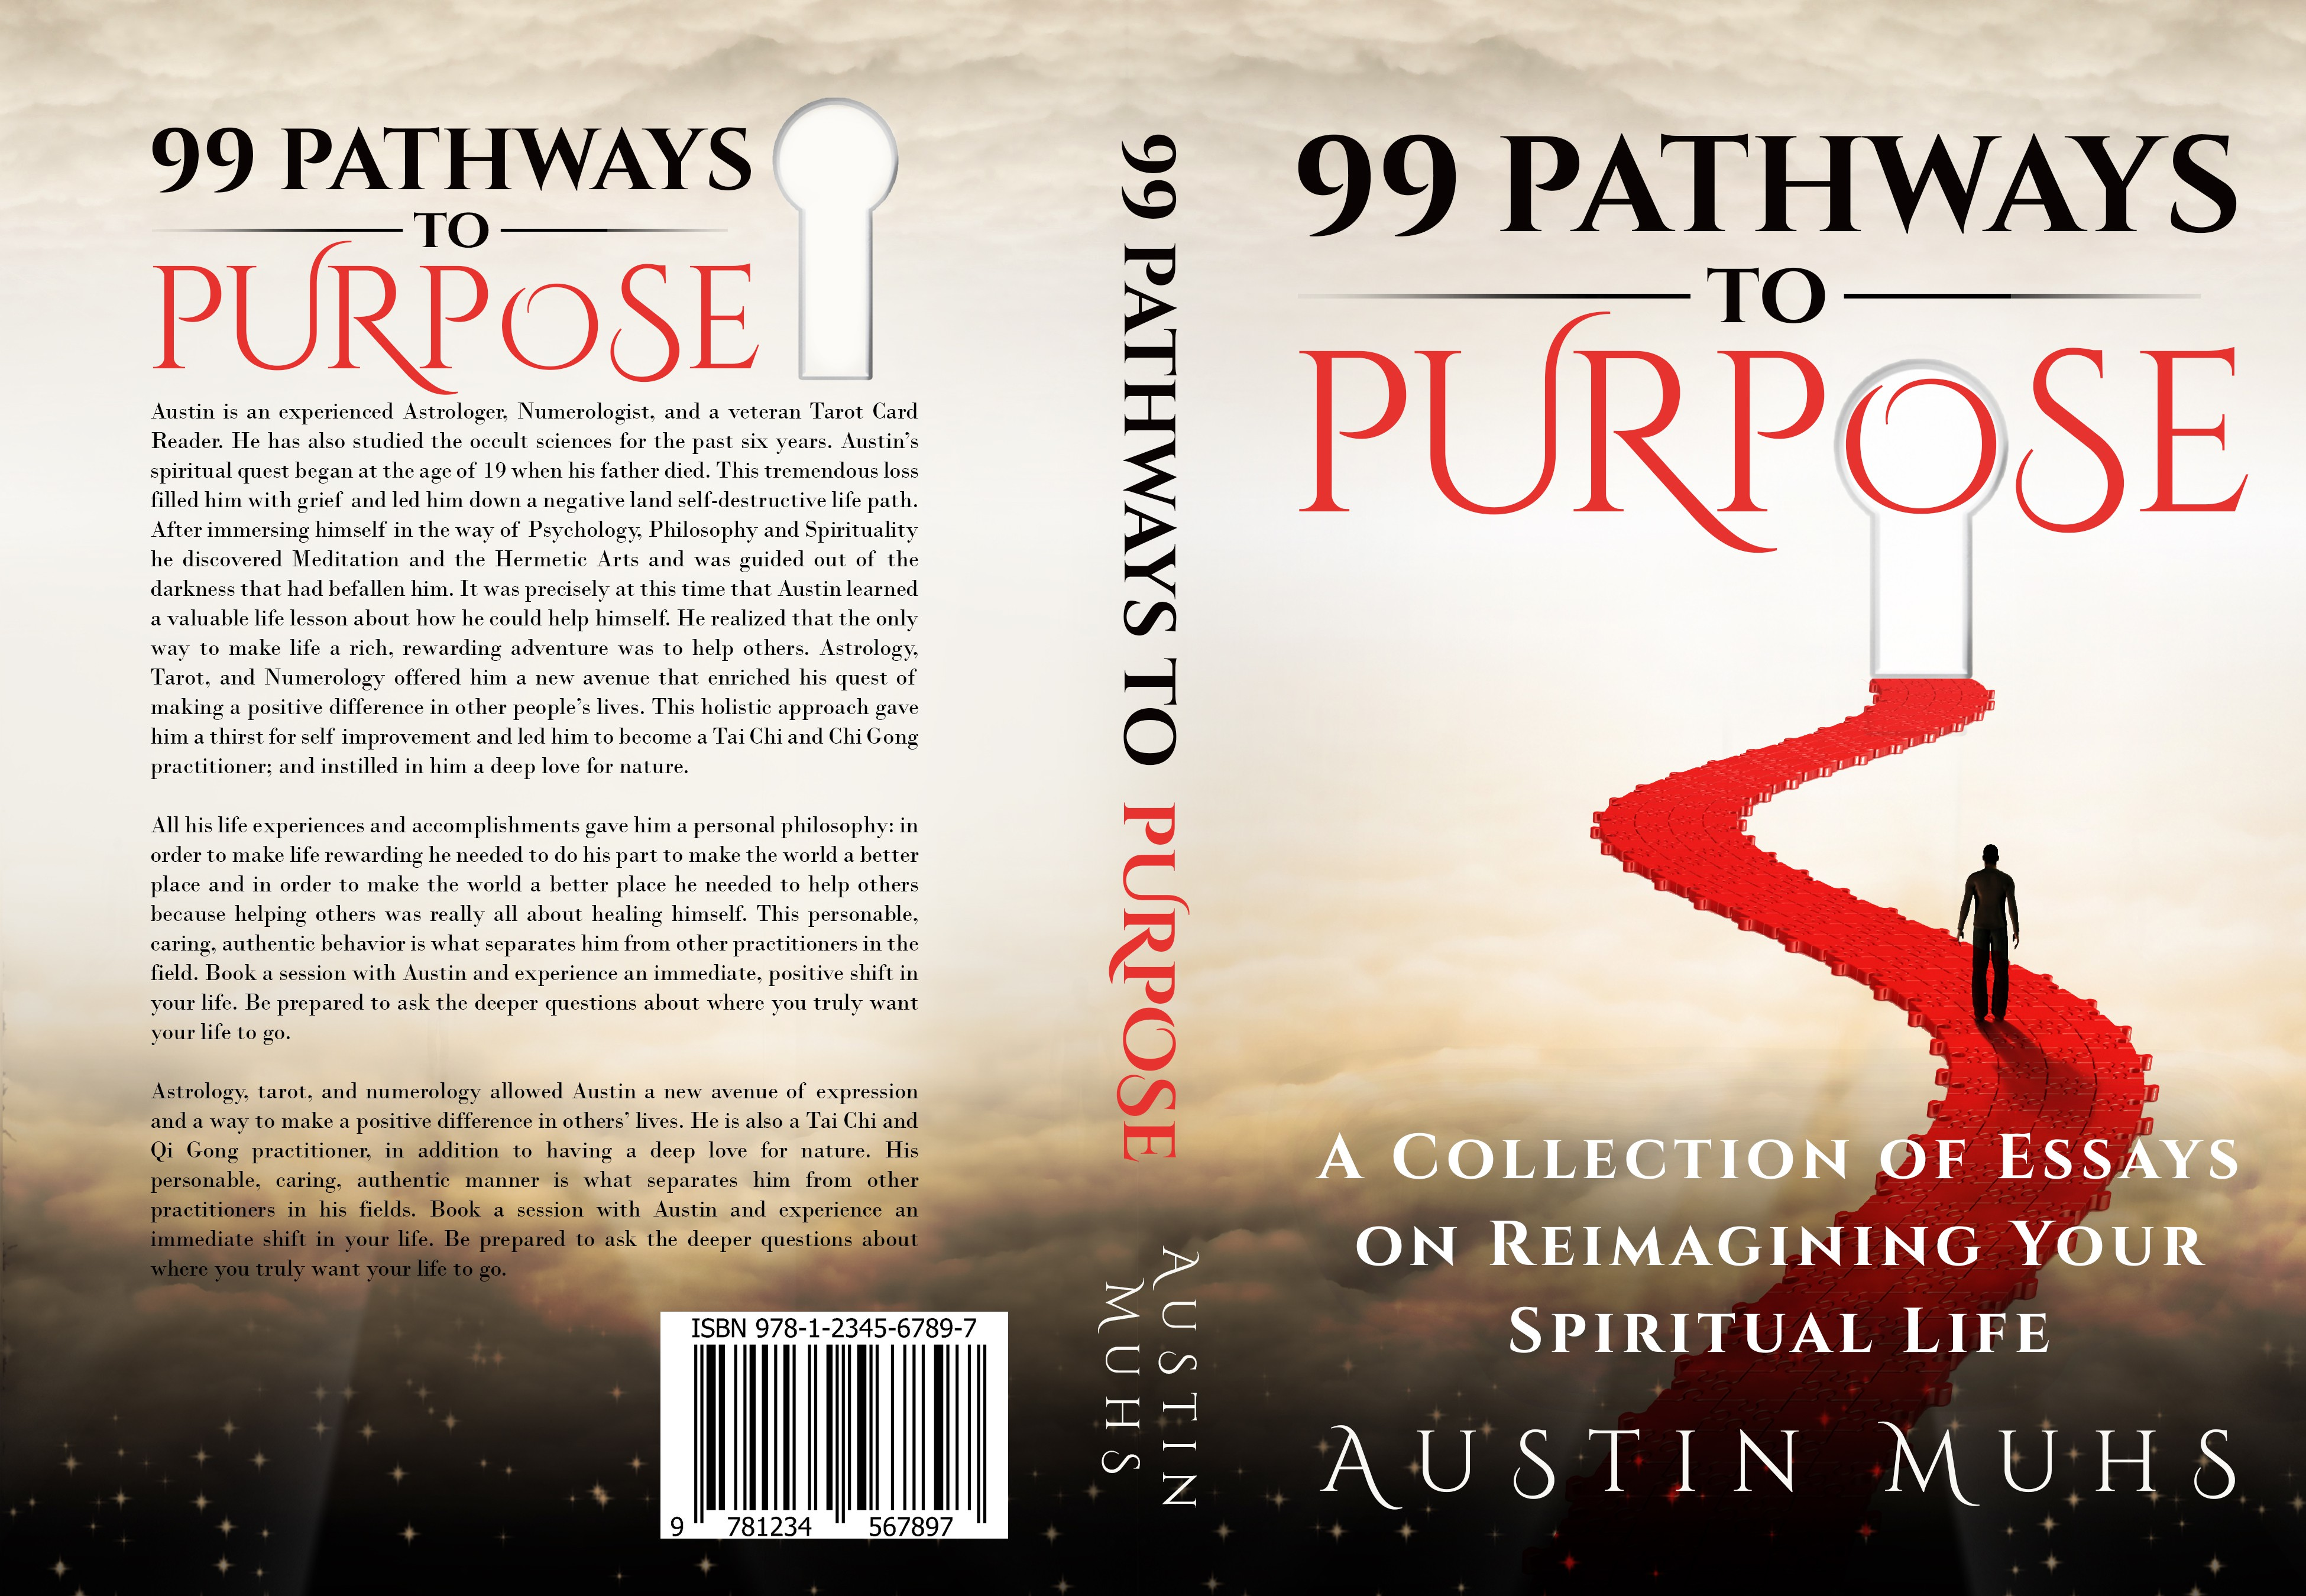 Inspirational Coffee Table Book w/ Guaranteed Publicity Needs Amazing Cover!